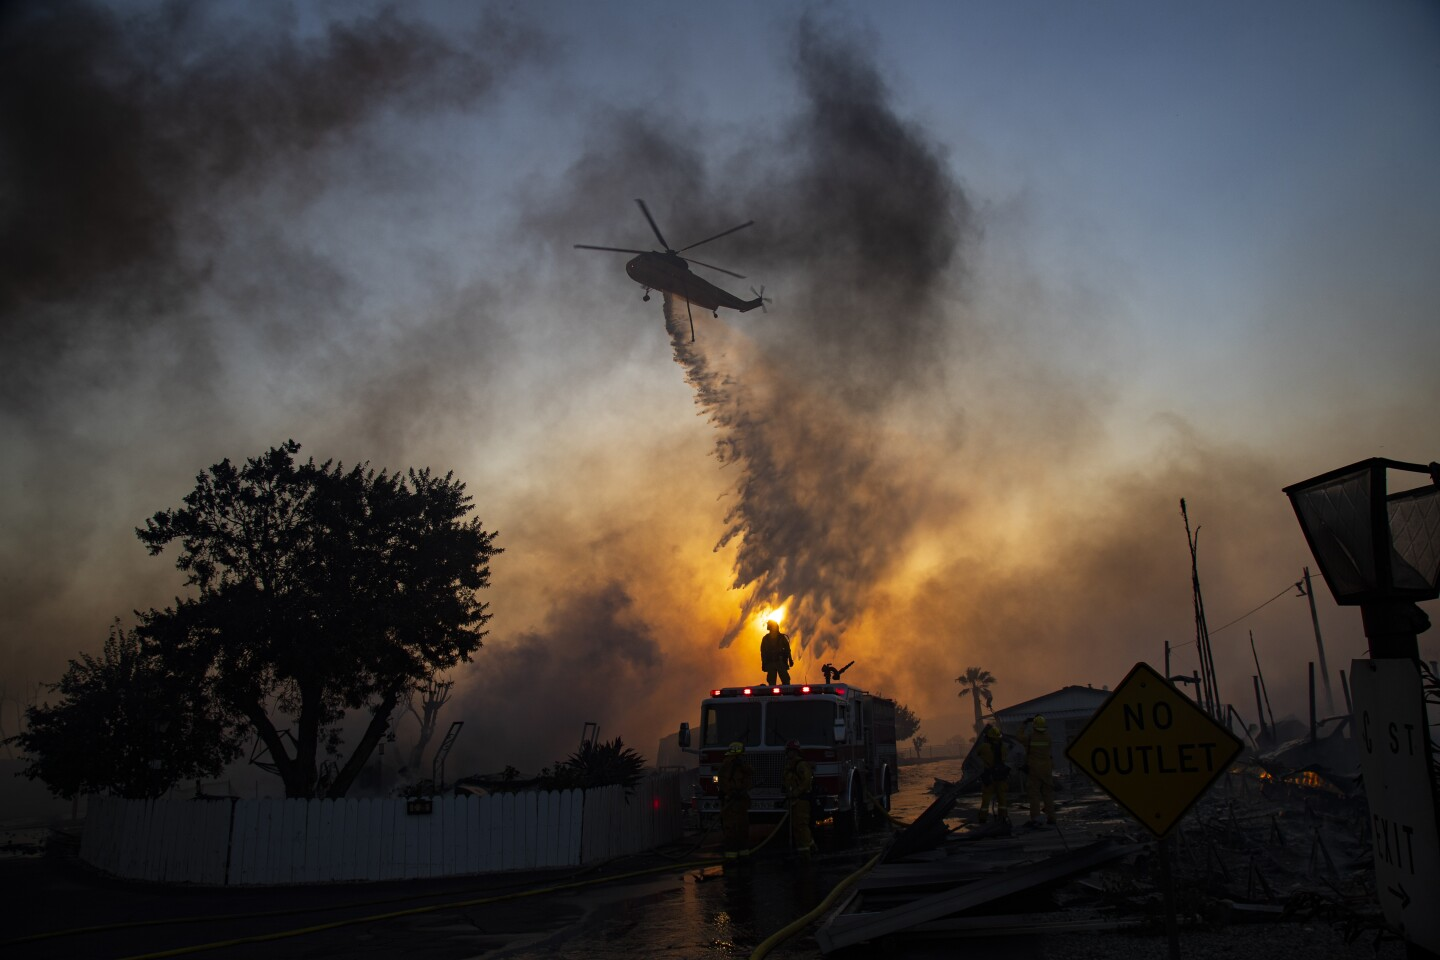 CALIMESA, CA - OCTOBER 10, 2019: A water dropping helicopter drops water on burning mobile homes to try and keep the Sandalwood fire from spreading at Villa Calimesa mobile home park on October 10, 2019 in Calimesa, California. Multiple mobile homes were lost in the fire.(Gina Ferazzi/Los AngelesTimes)